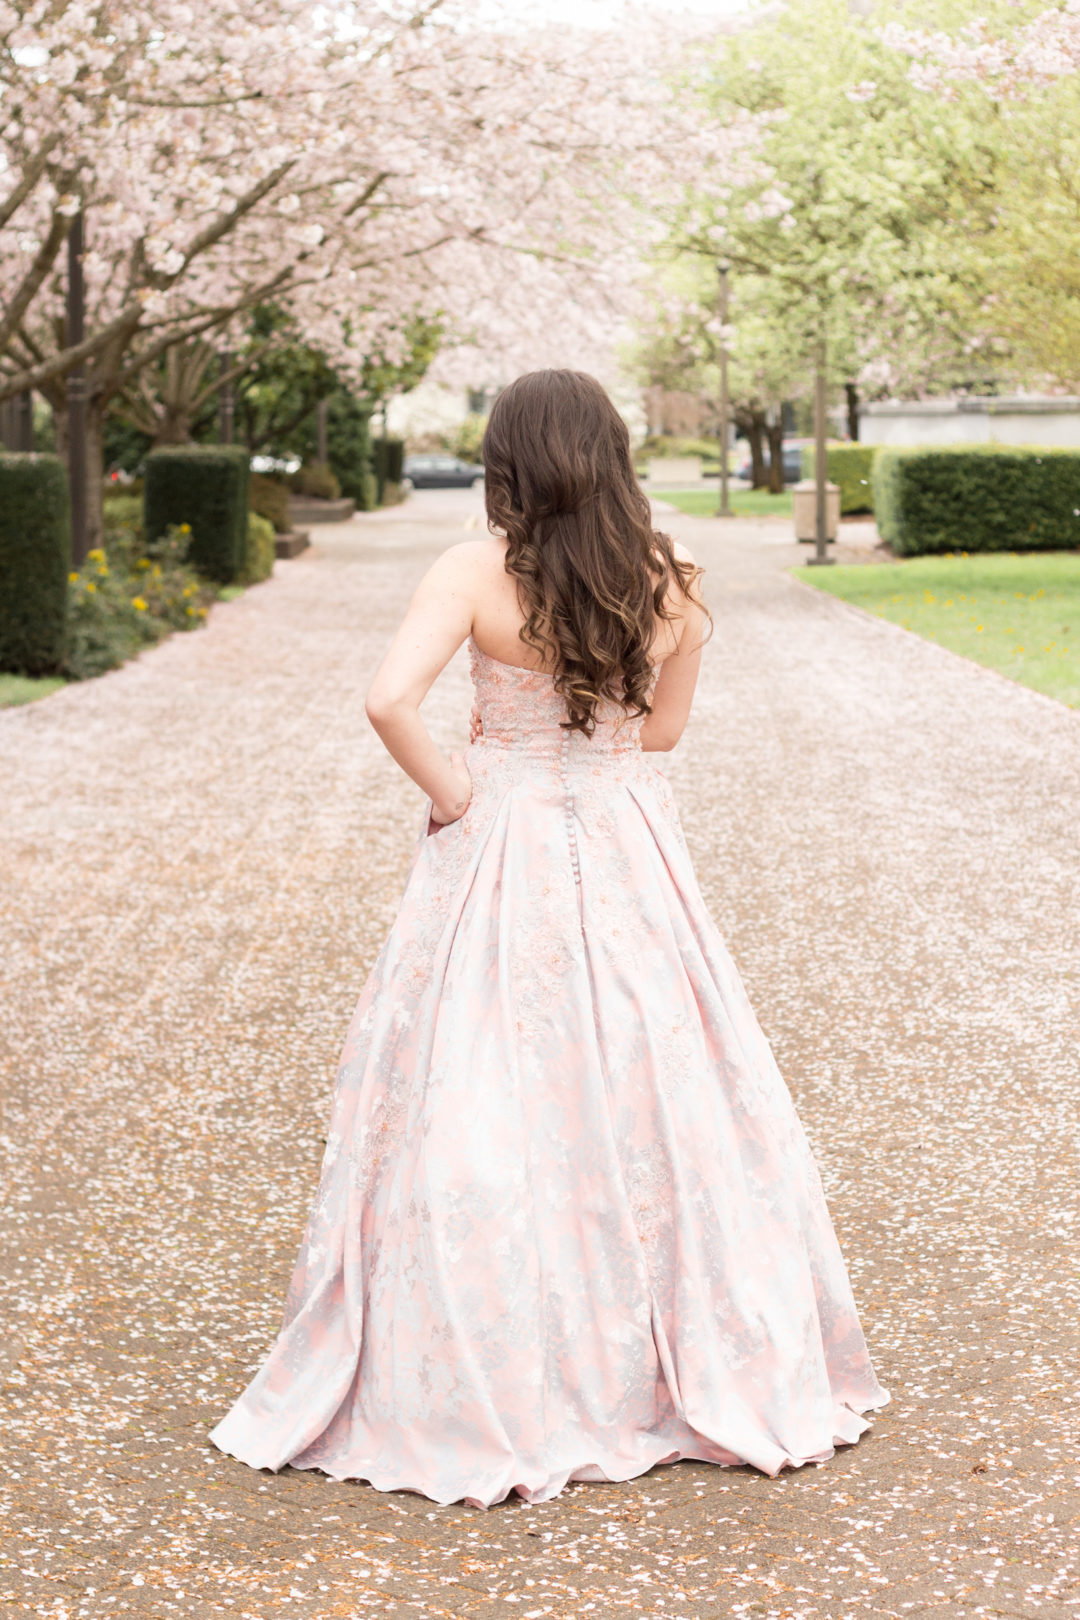 Prom and Formal dress guide for your body type and personal taste.